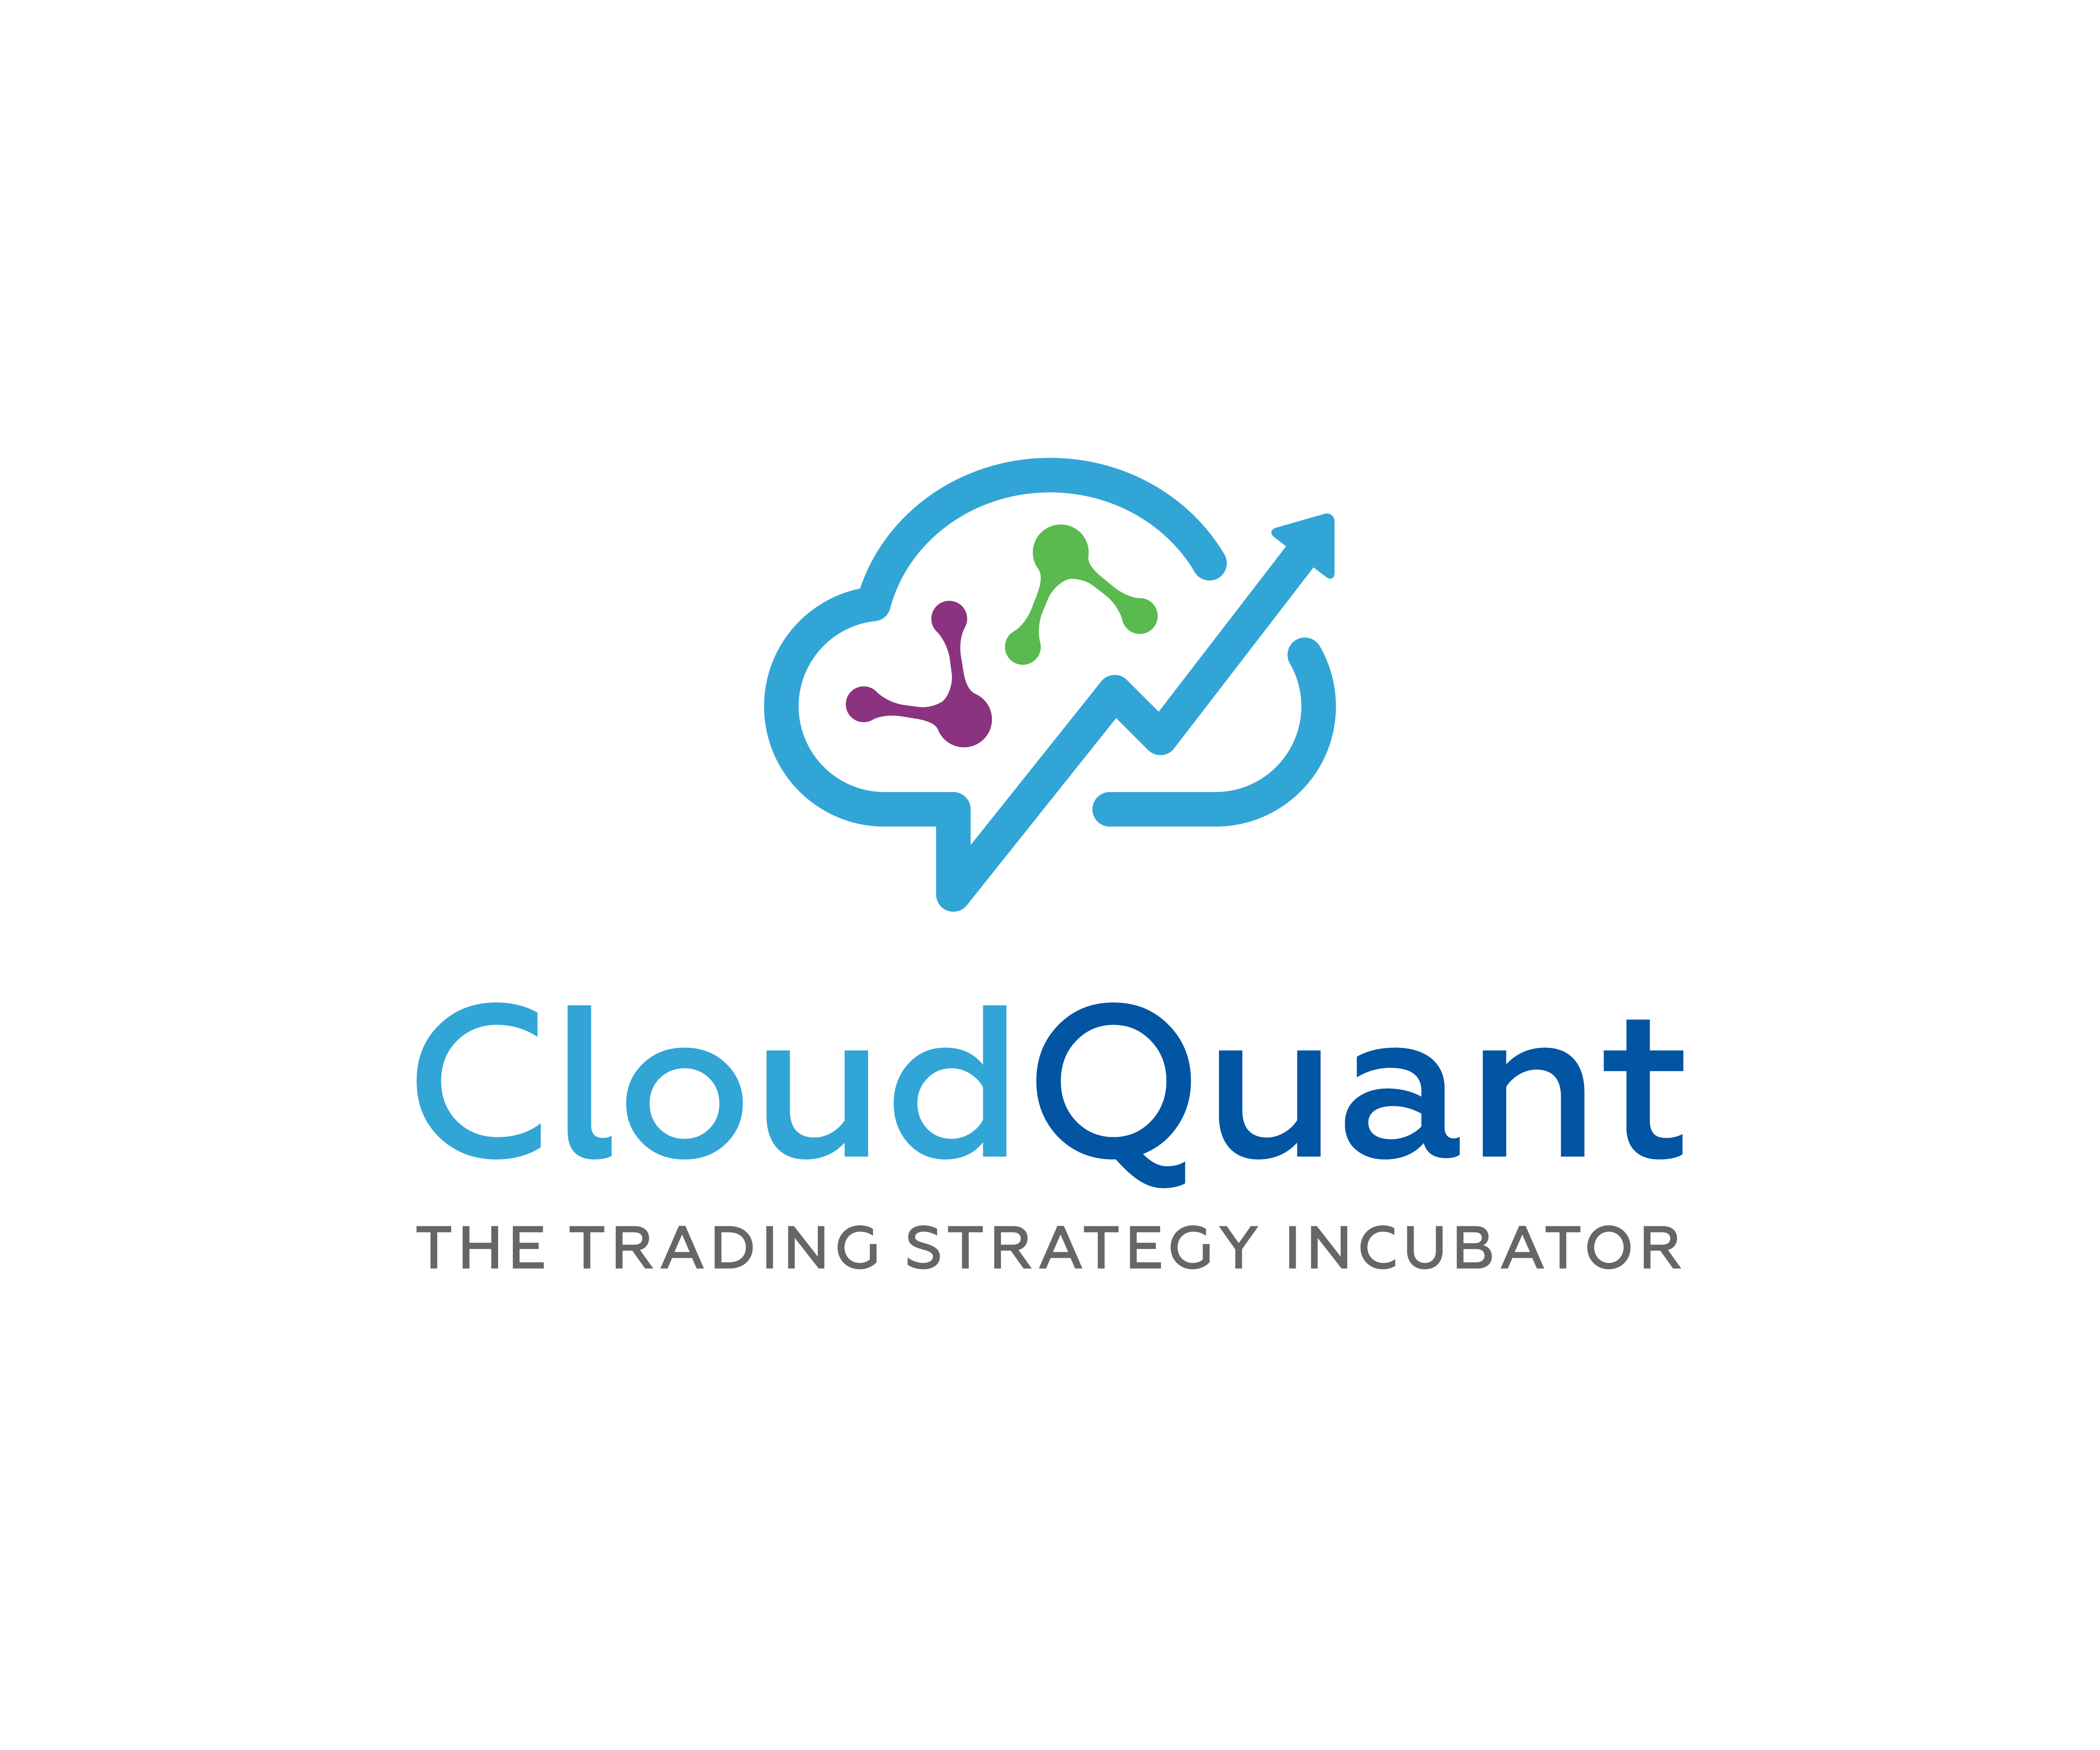 CloudQuant Launches with Unprecedented Risk Capital Allocation to Crowd Researcher